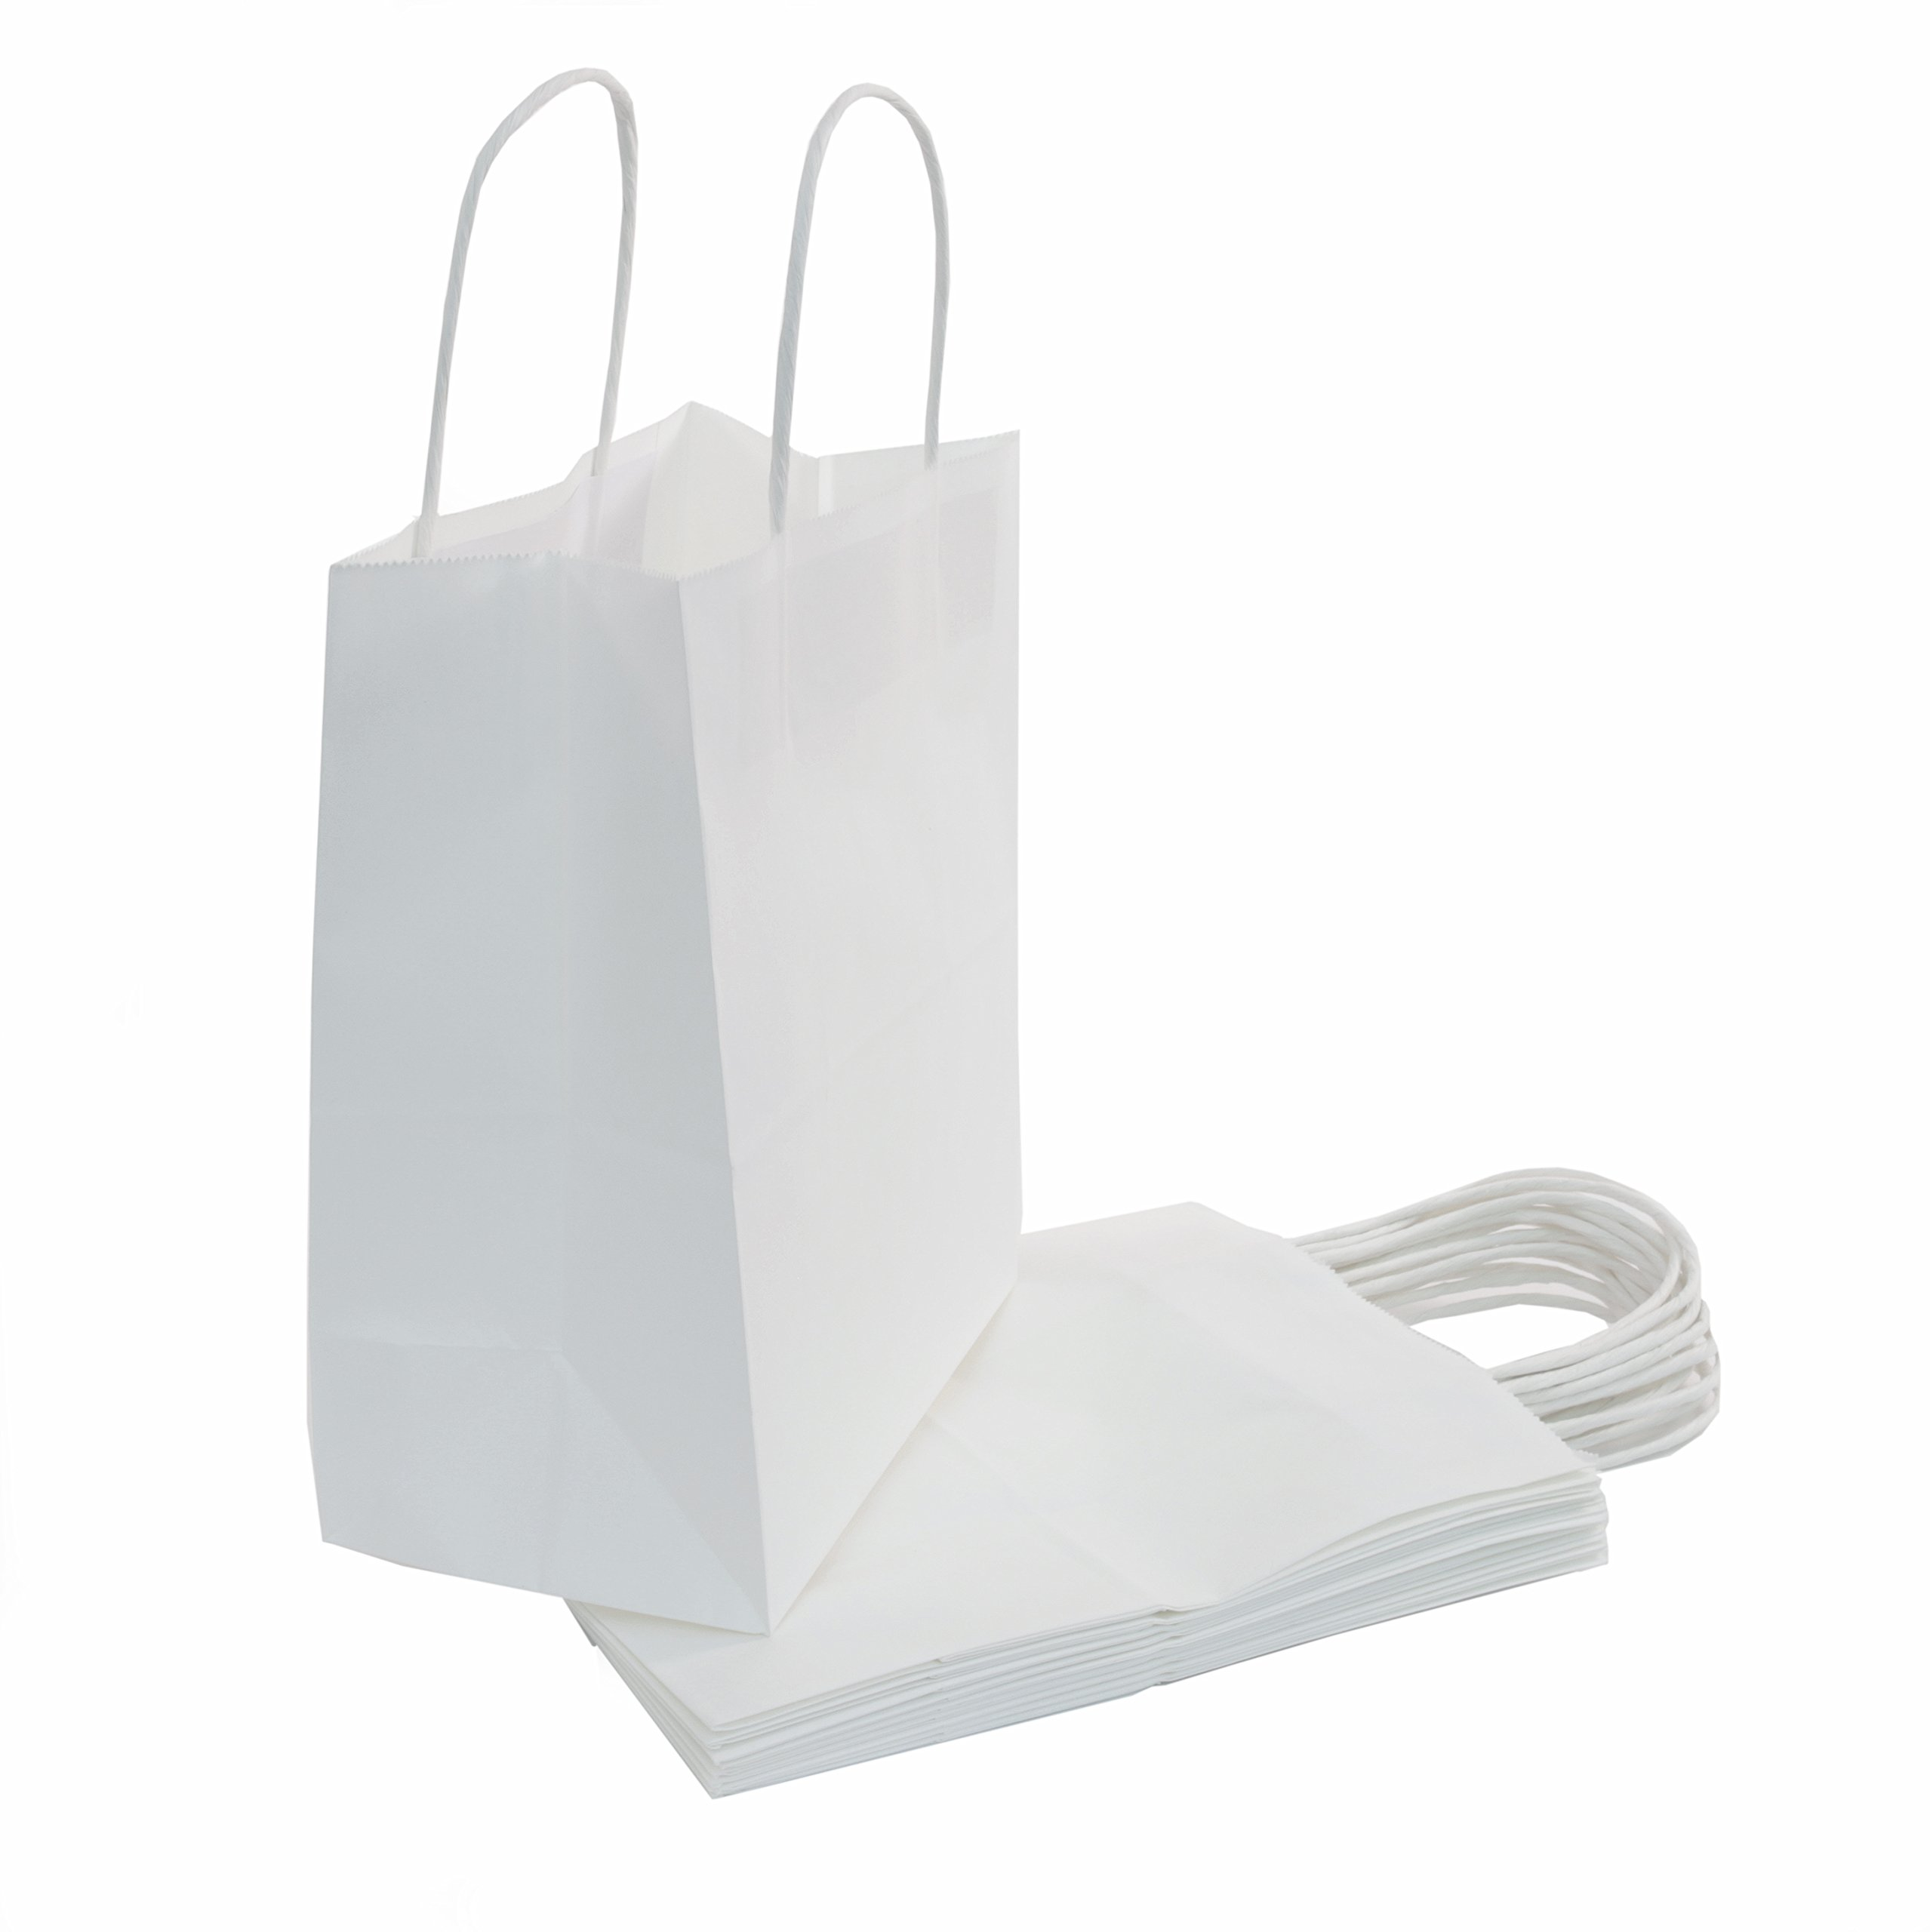 "50 Count - White Kraft Paper Bags with Handles - Perfect Solution for Baby Shower, Birthday Parties, Boys and Girls Gifts, Shopping, Restaurant takeout and Shop Owners - Size (8""x4.75""x10"")"